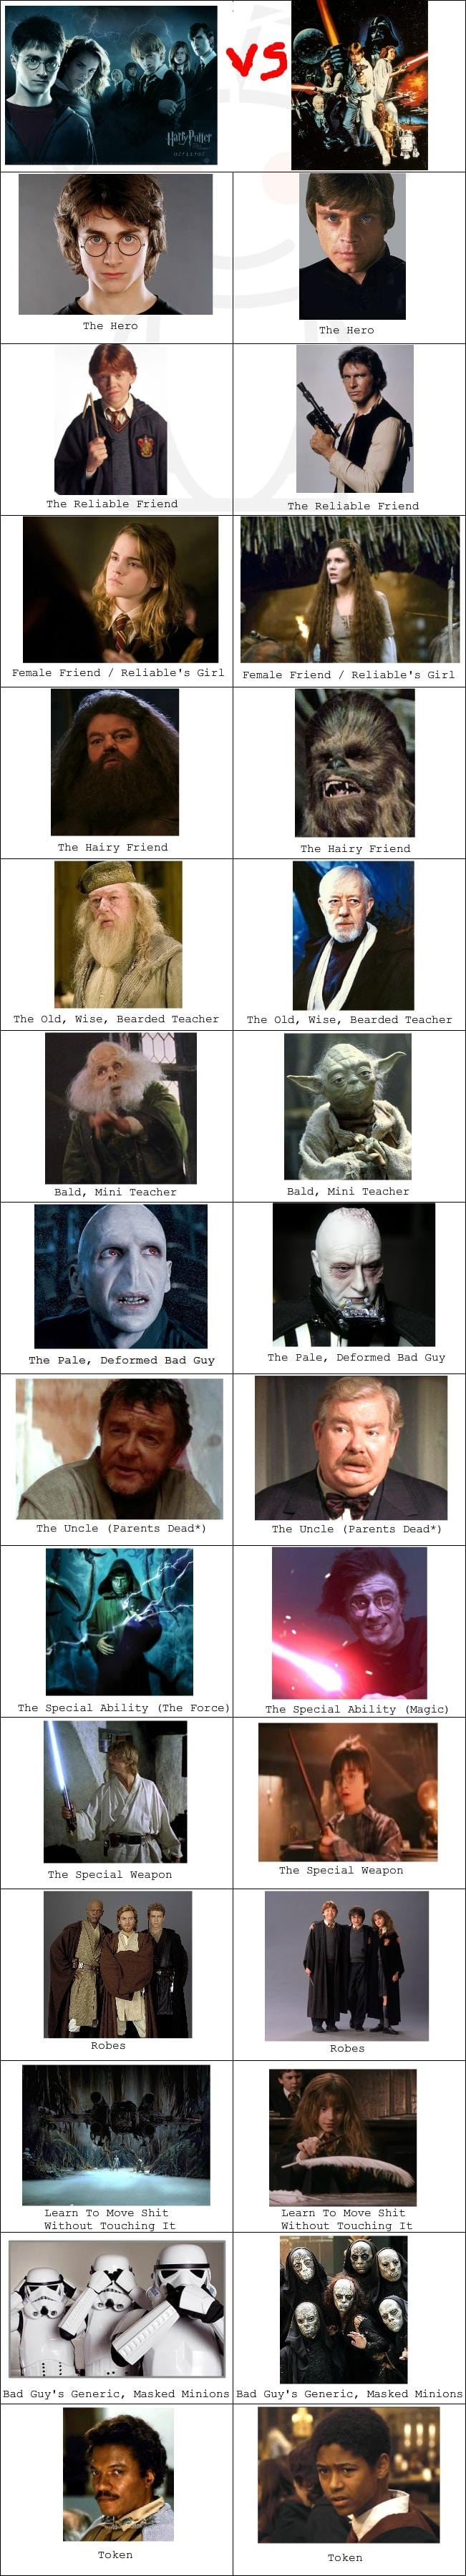 Harry Potter vs. Star Wars: The Similarities Are Striking